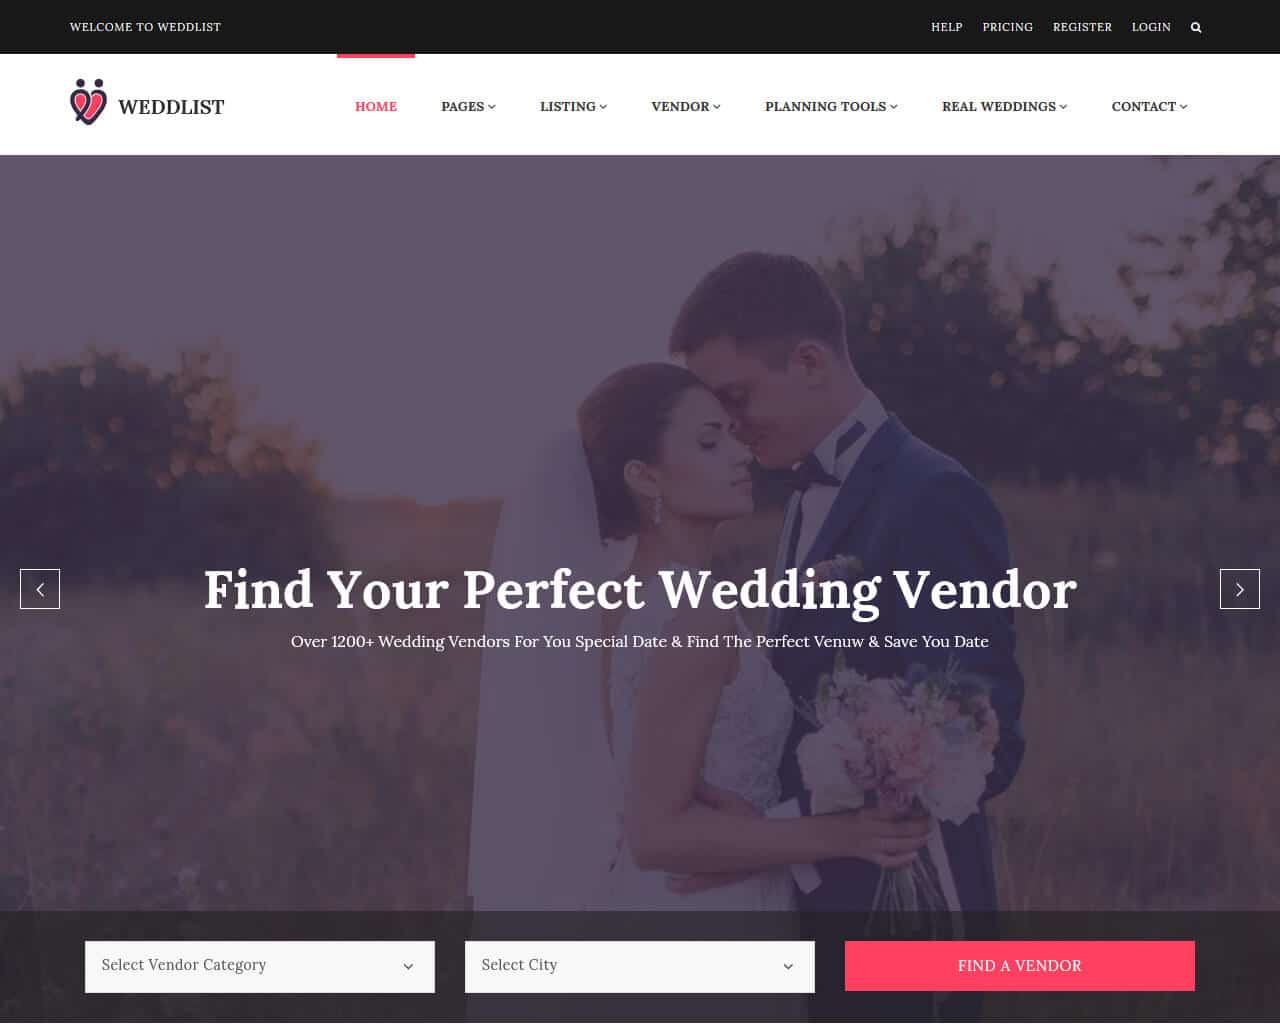 Weddlist Website Template